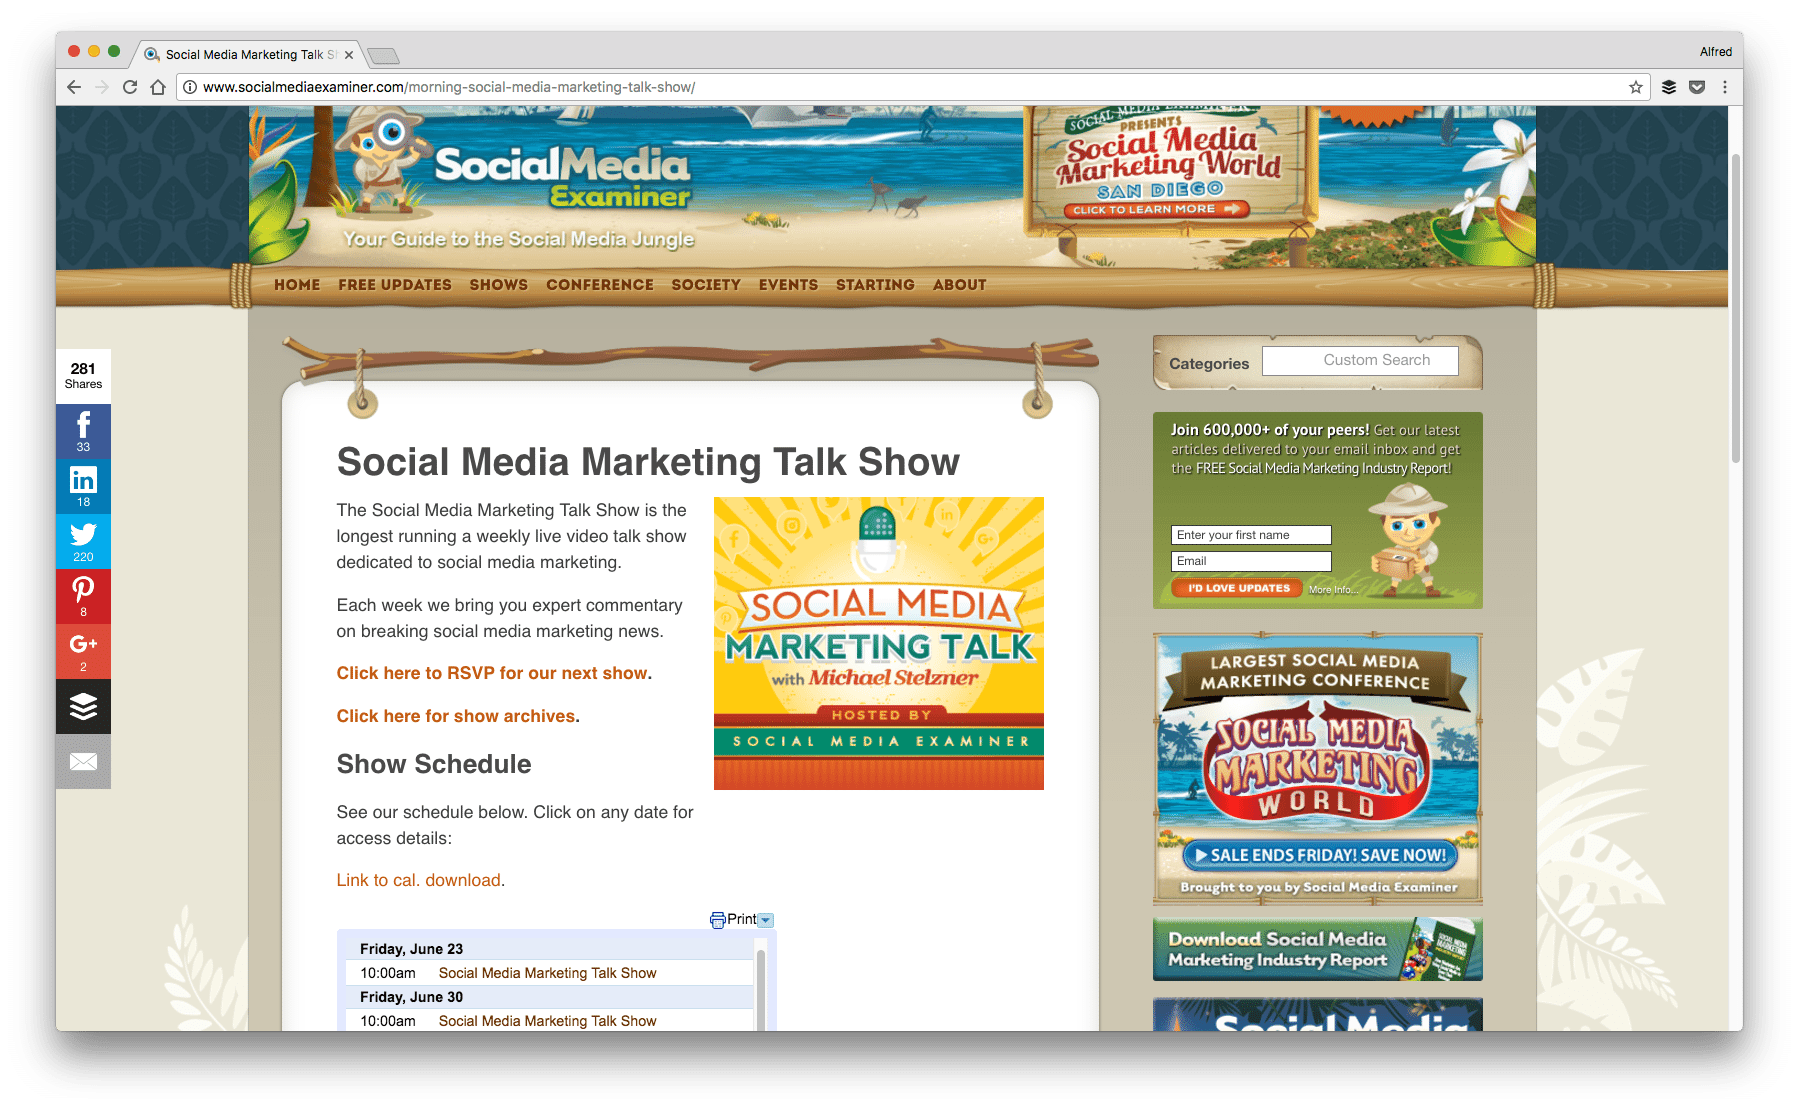 Social Media Marketing Talk Show